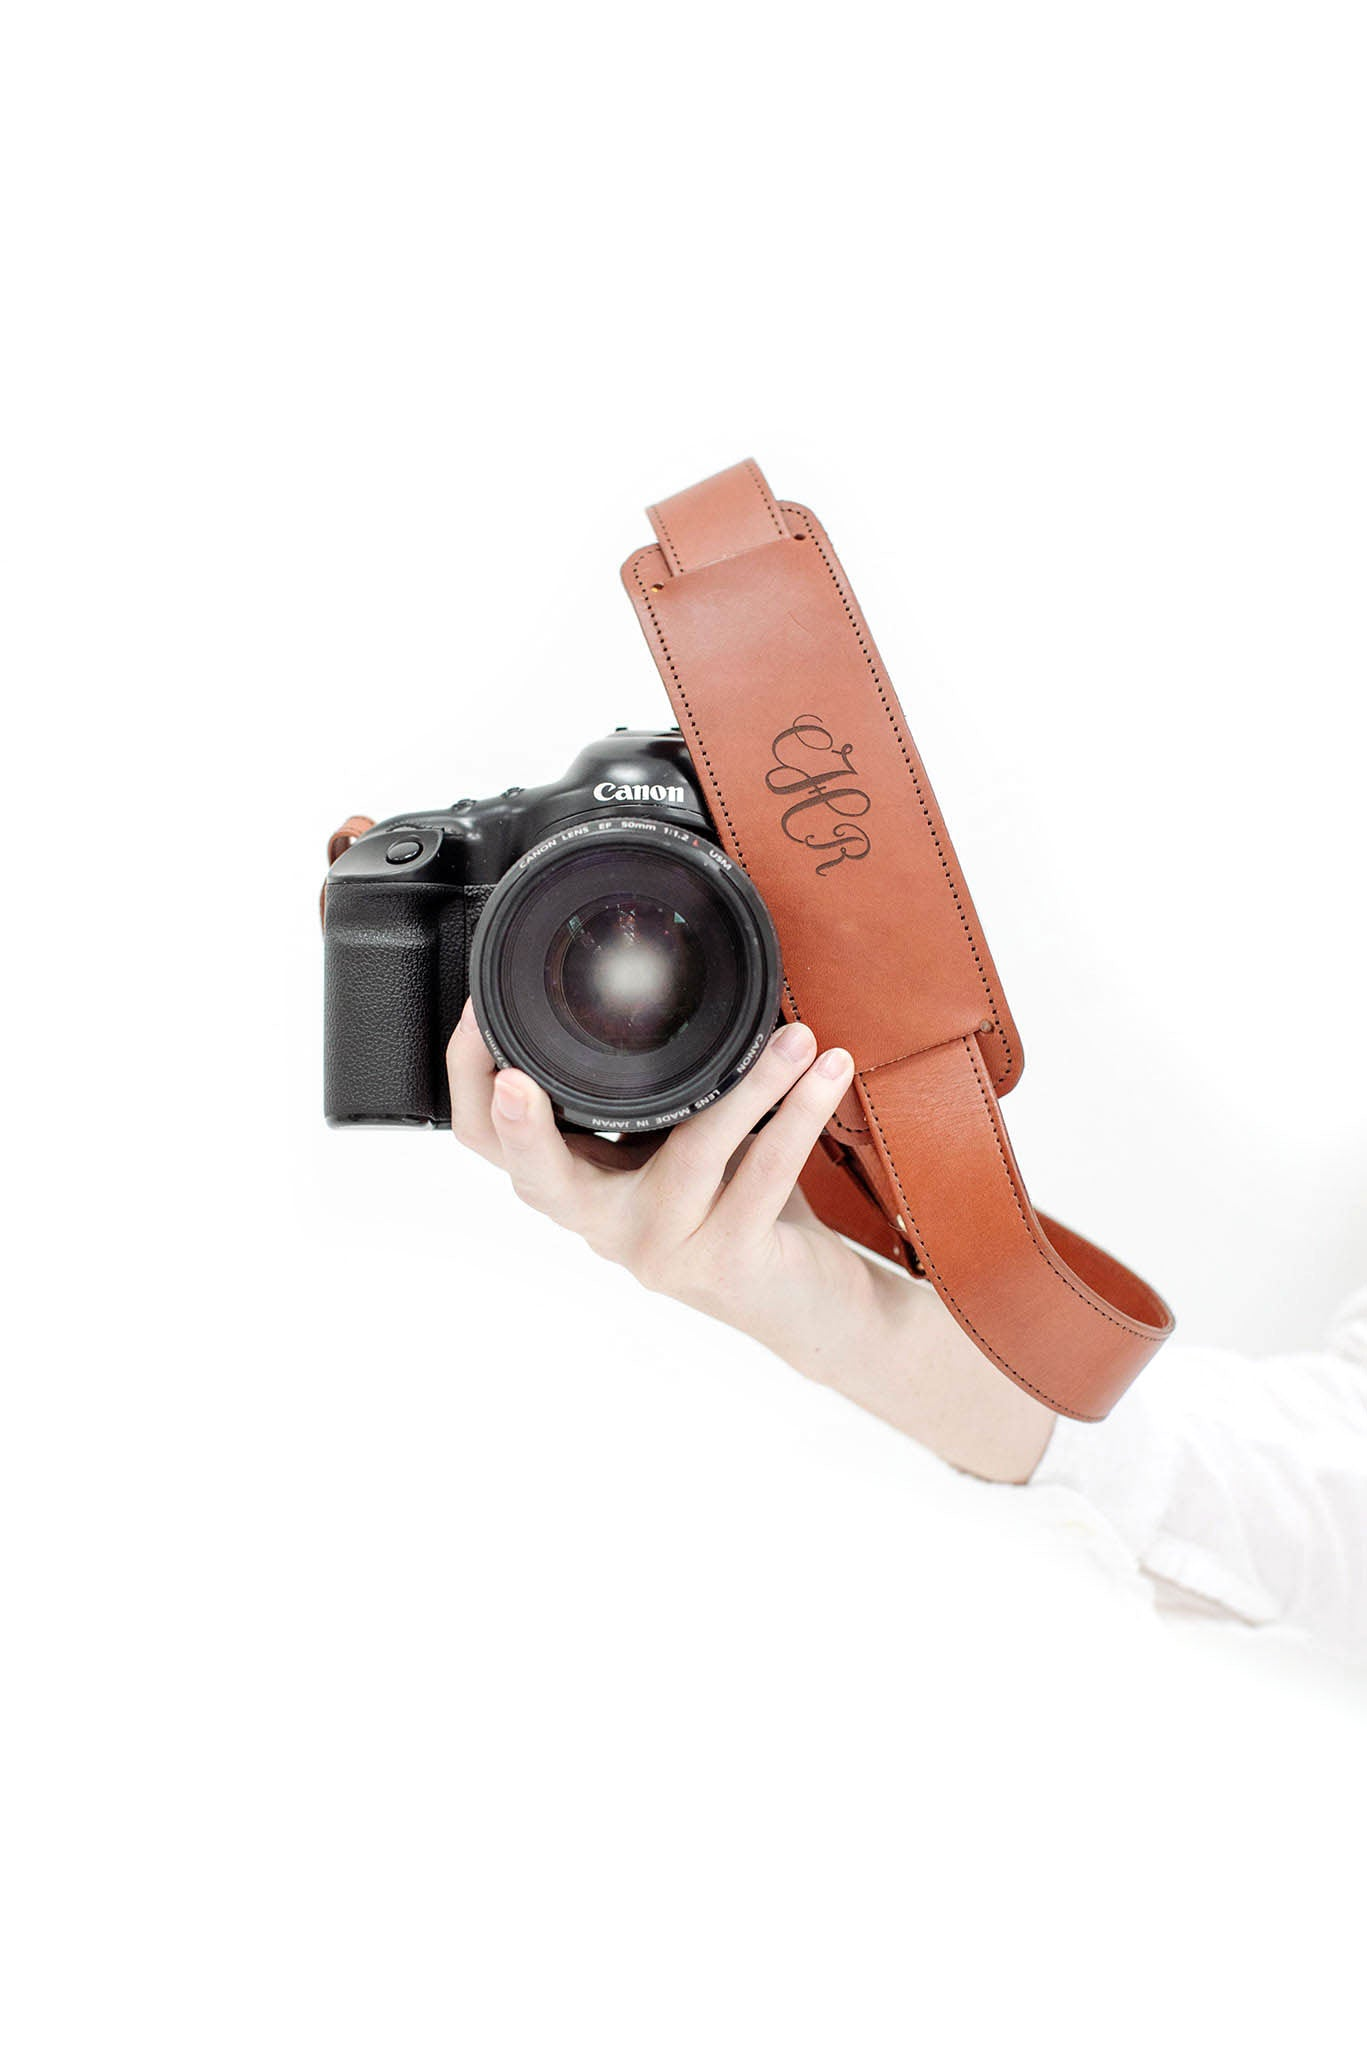 FOTO | James Fotostrap - a cognac brown genuine all-leather camera strap that can be personalized with a monogram or business logo, making this leather camera strap the perfect personalized gift.